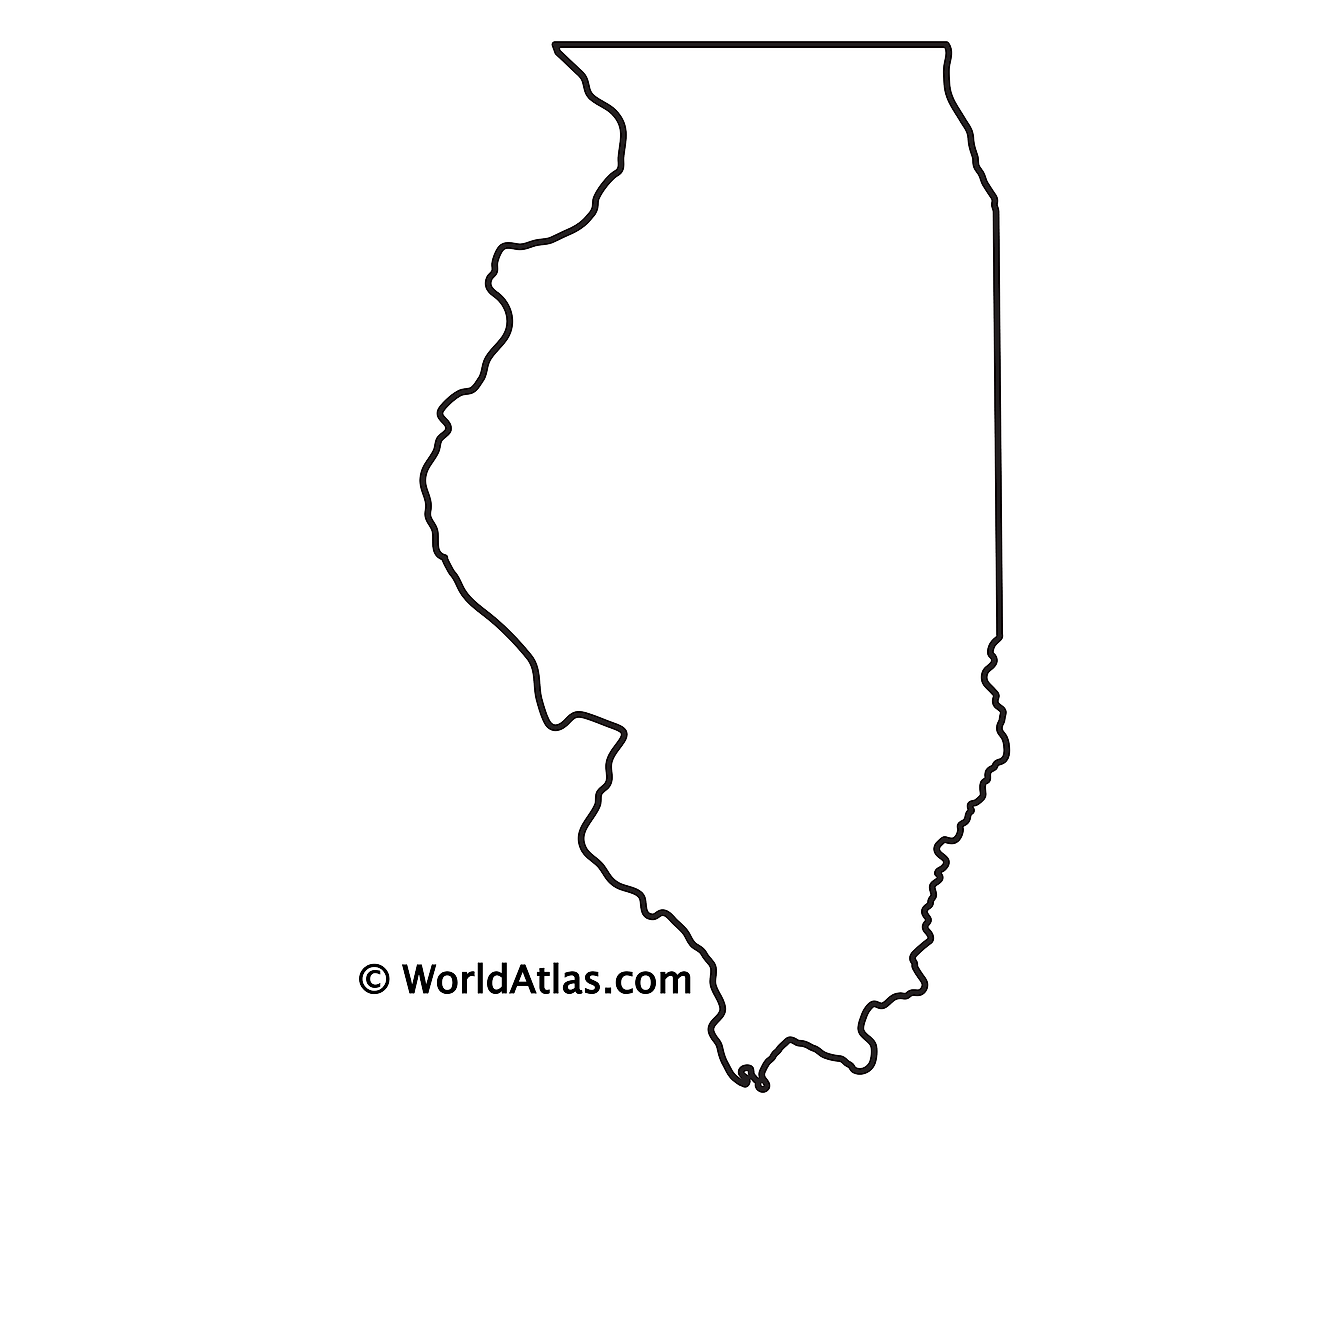 Blank Outline Map of Illinois